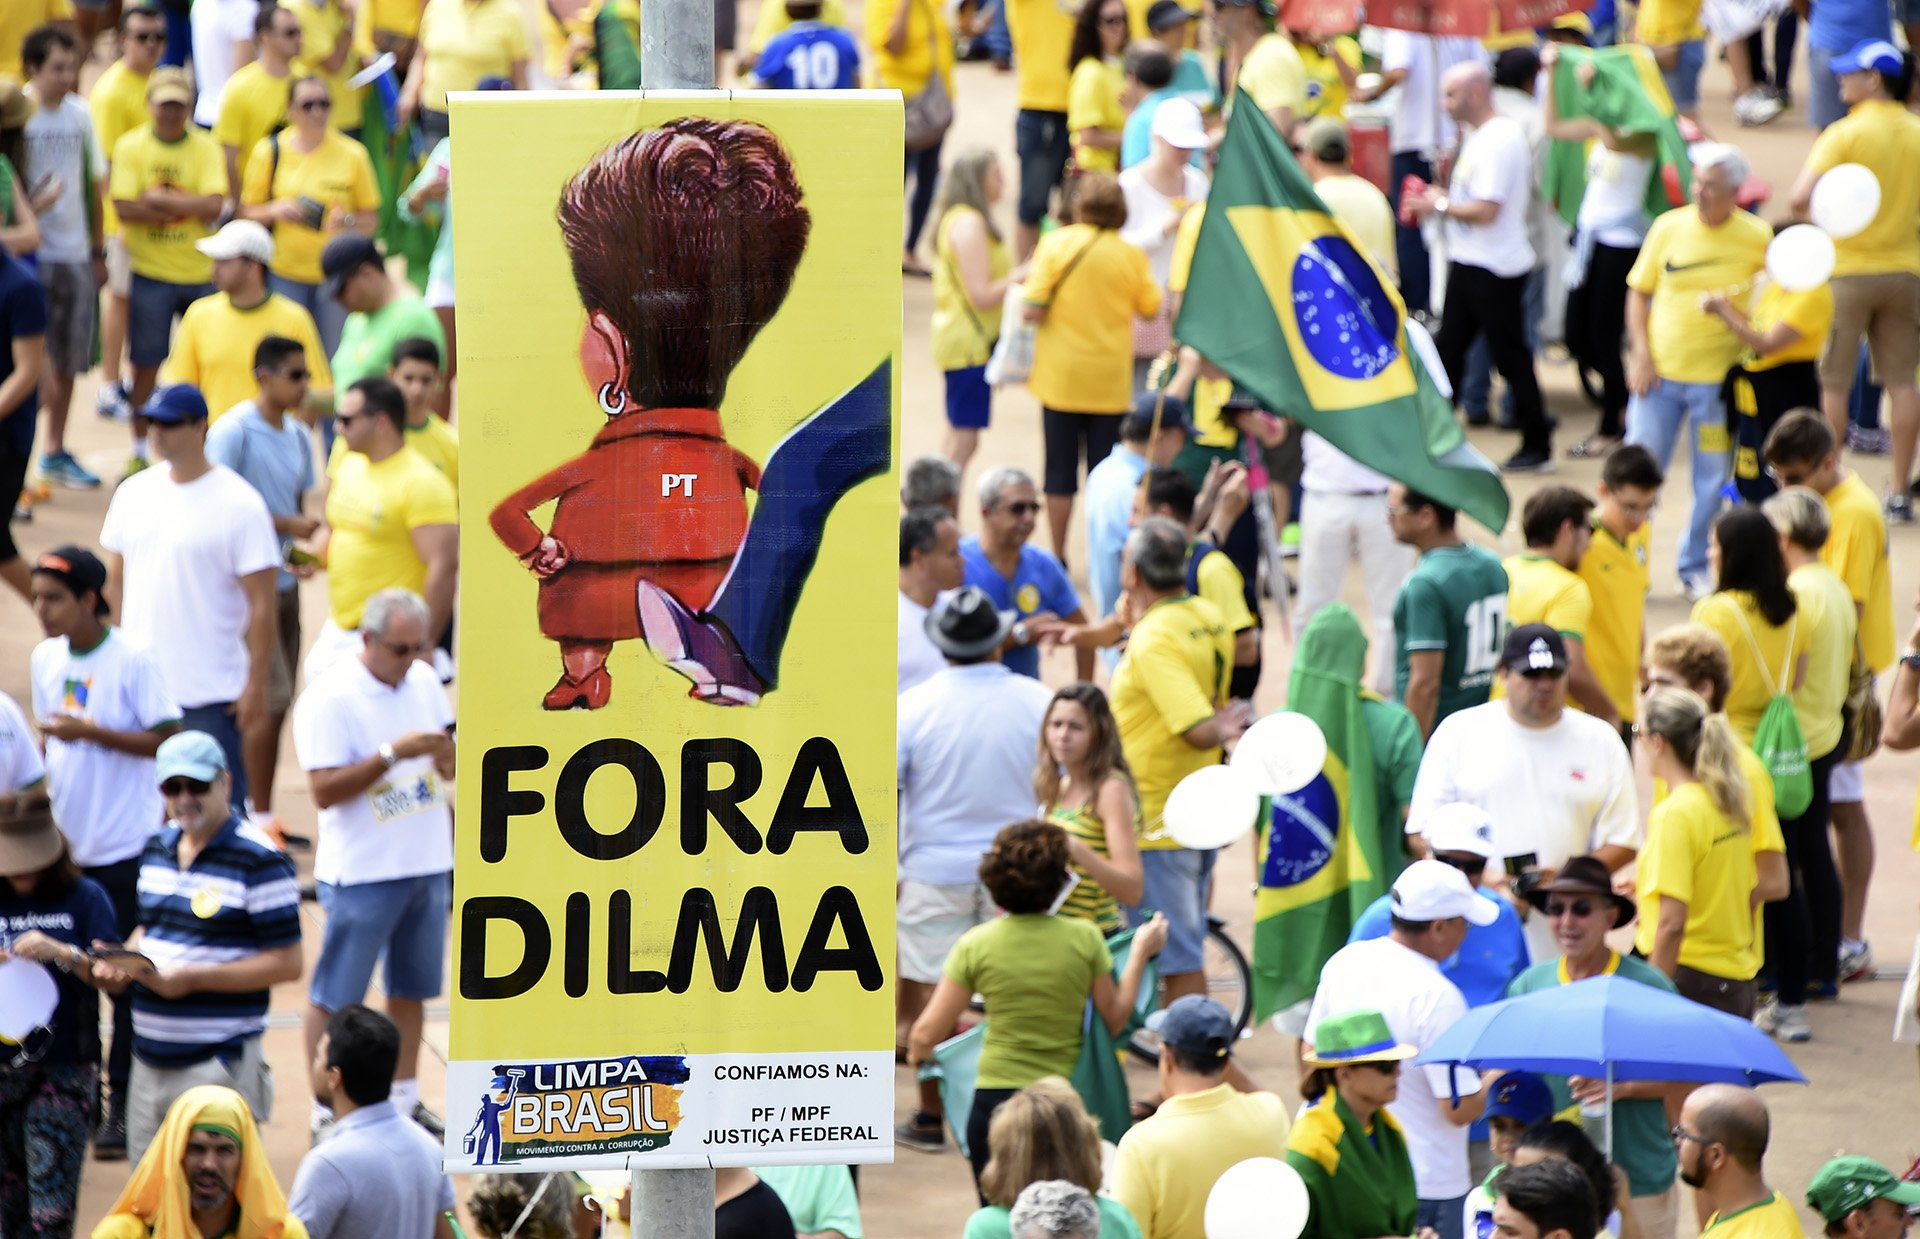 marcha brasil contra lula y dilma rousseff (4)